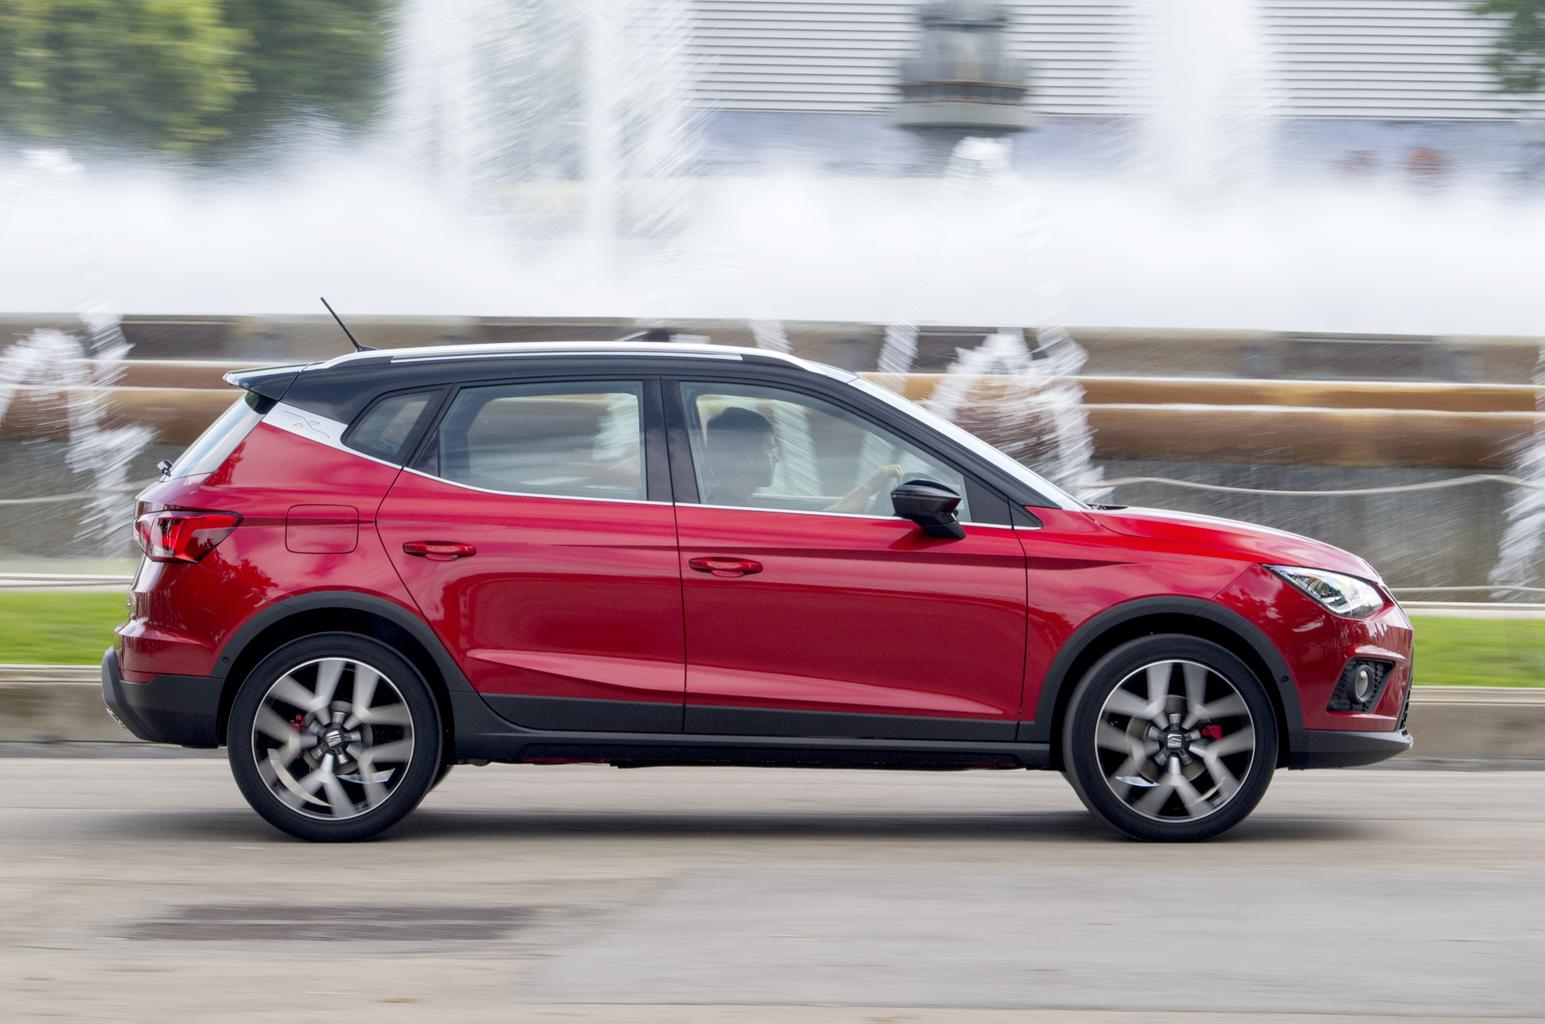 Seat Arona vs Seat Ateca – which SUV is best?